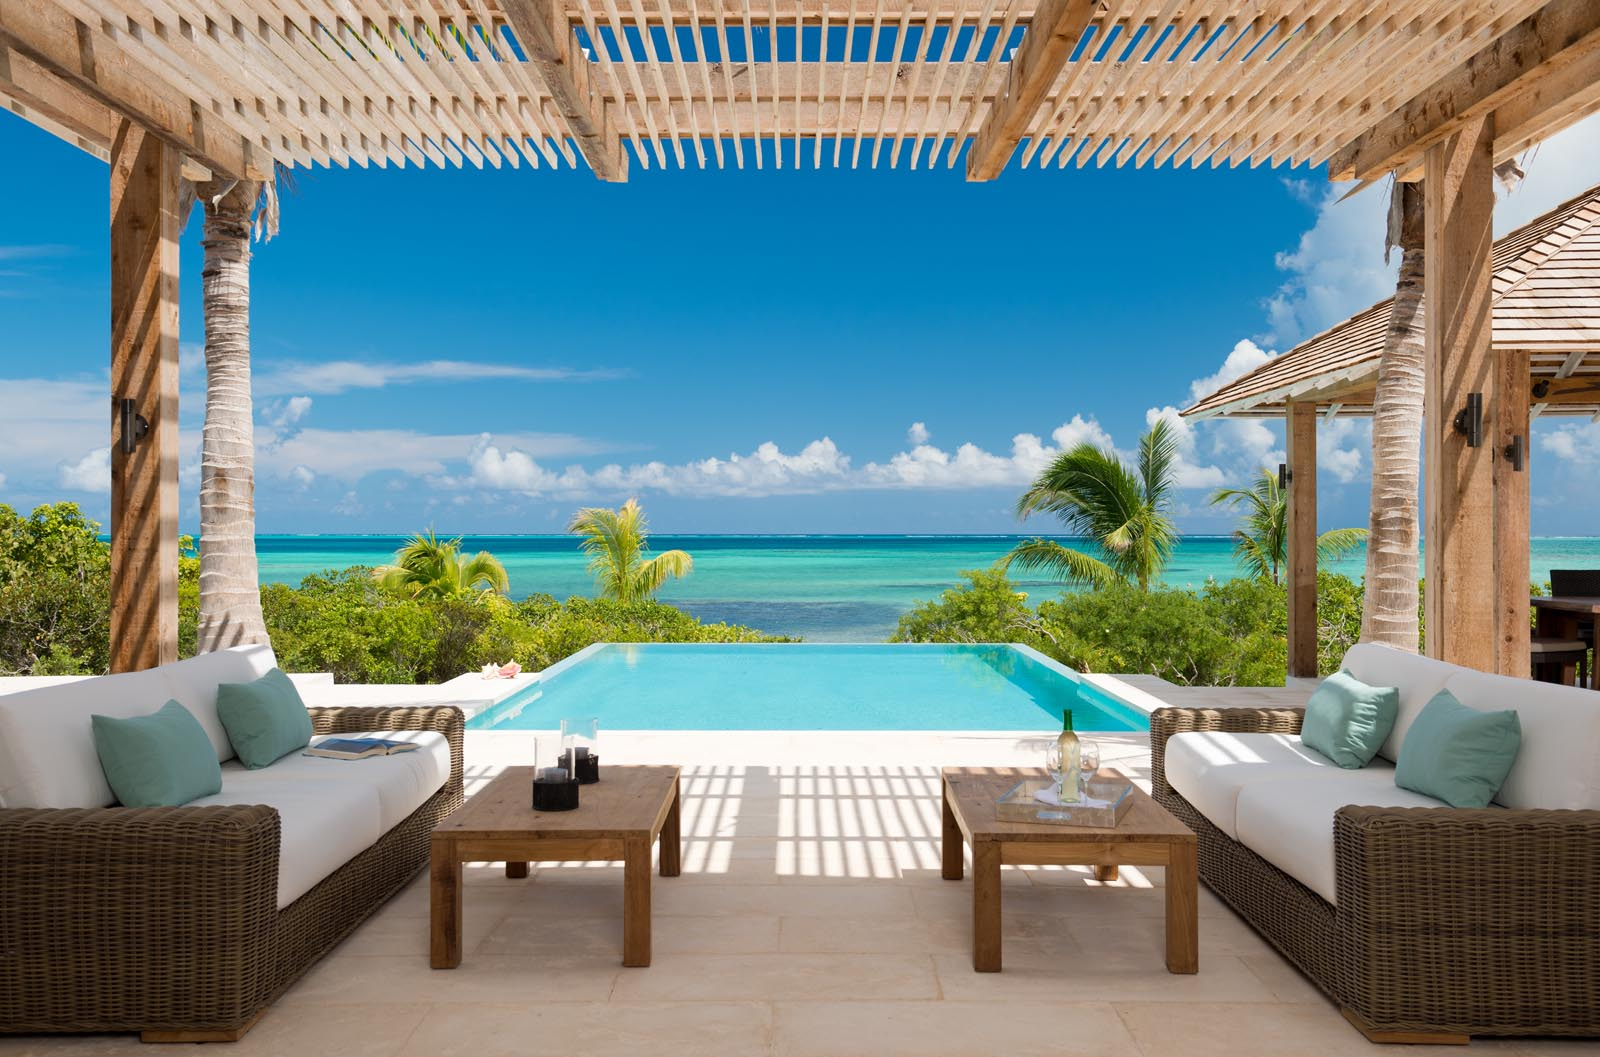 Castaway thompson cove providenciales provo turks for Five star turks and caicos